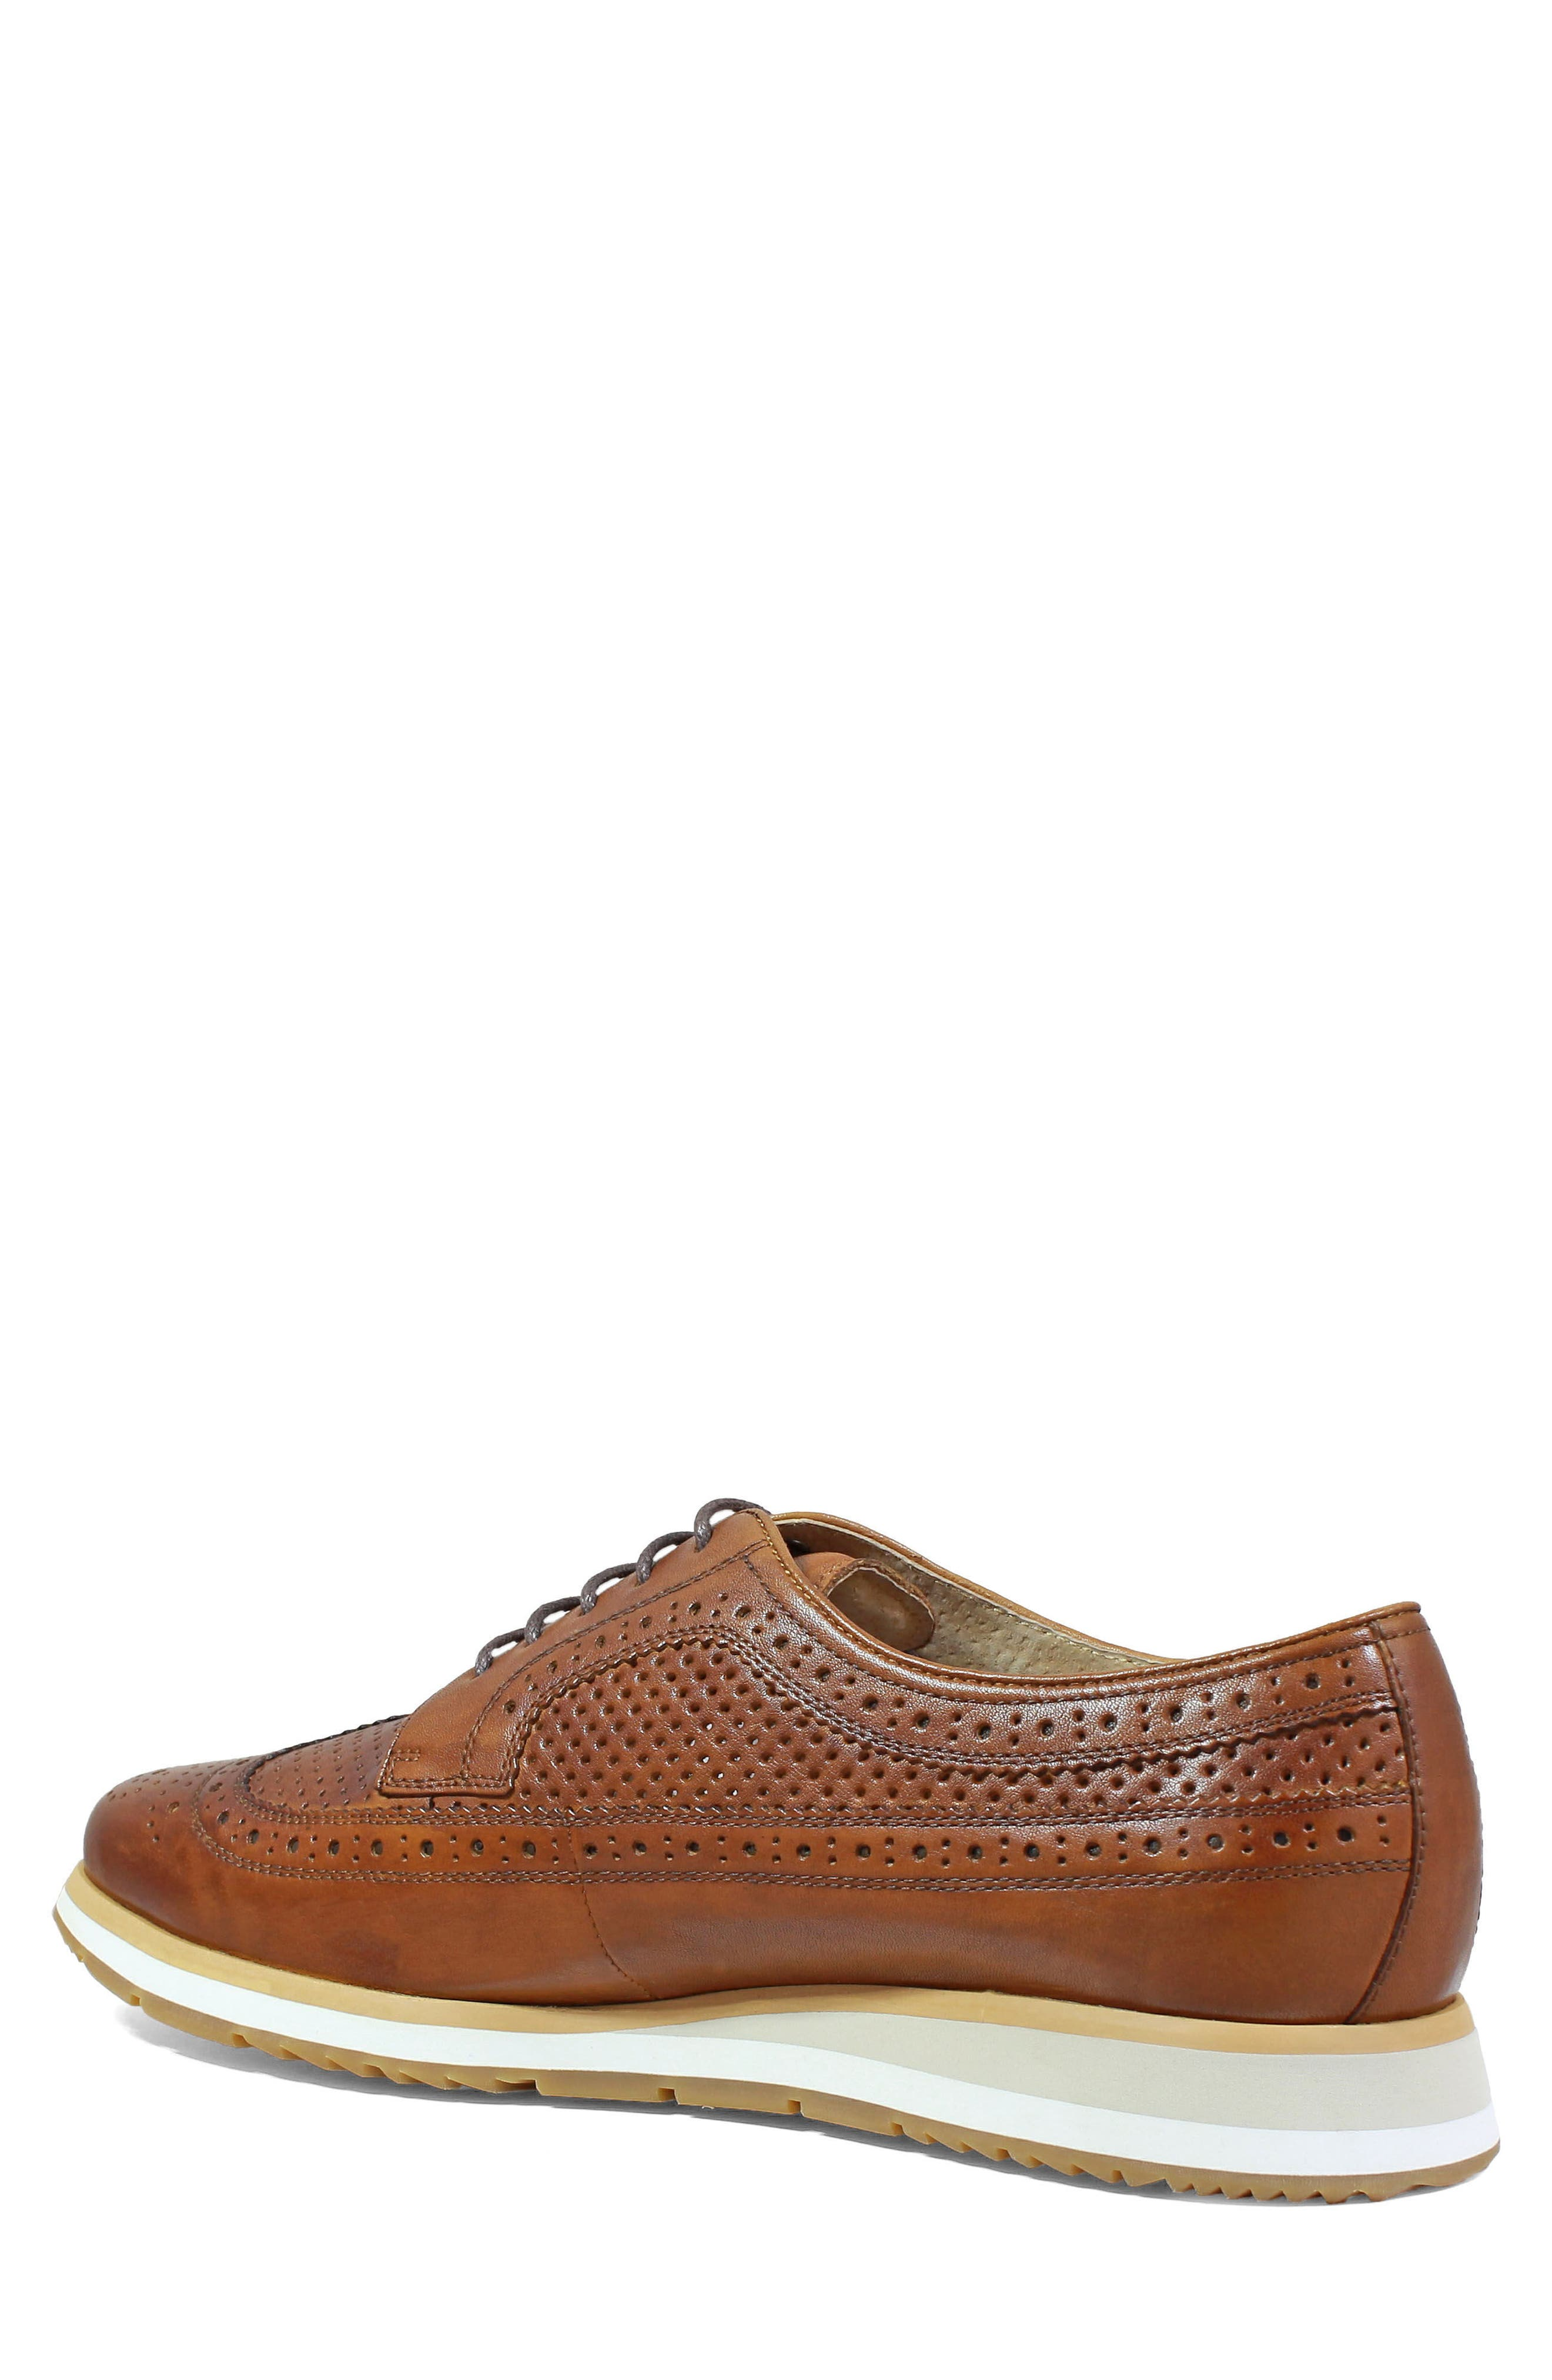 Limited Flux Perforated Wingtip Derby,                             Alternate thumbnail 4, color,